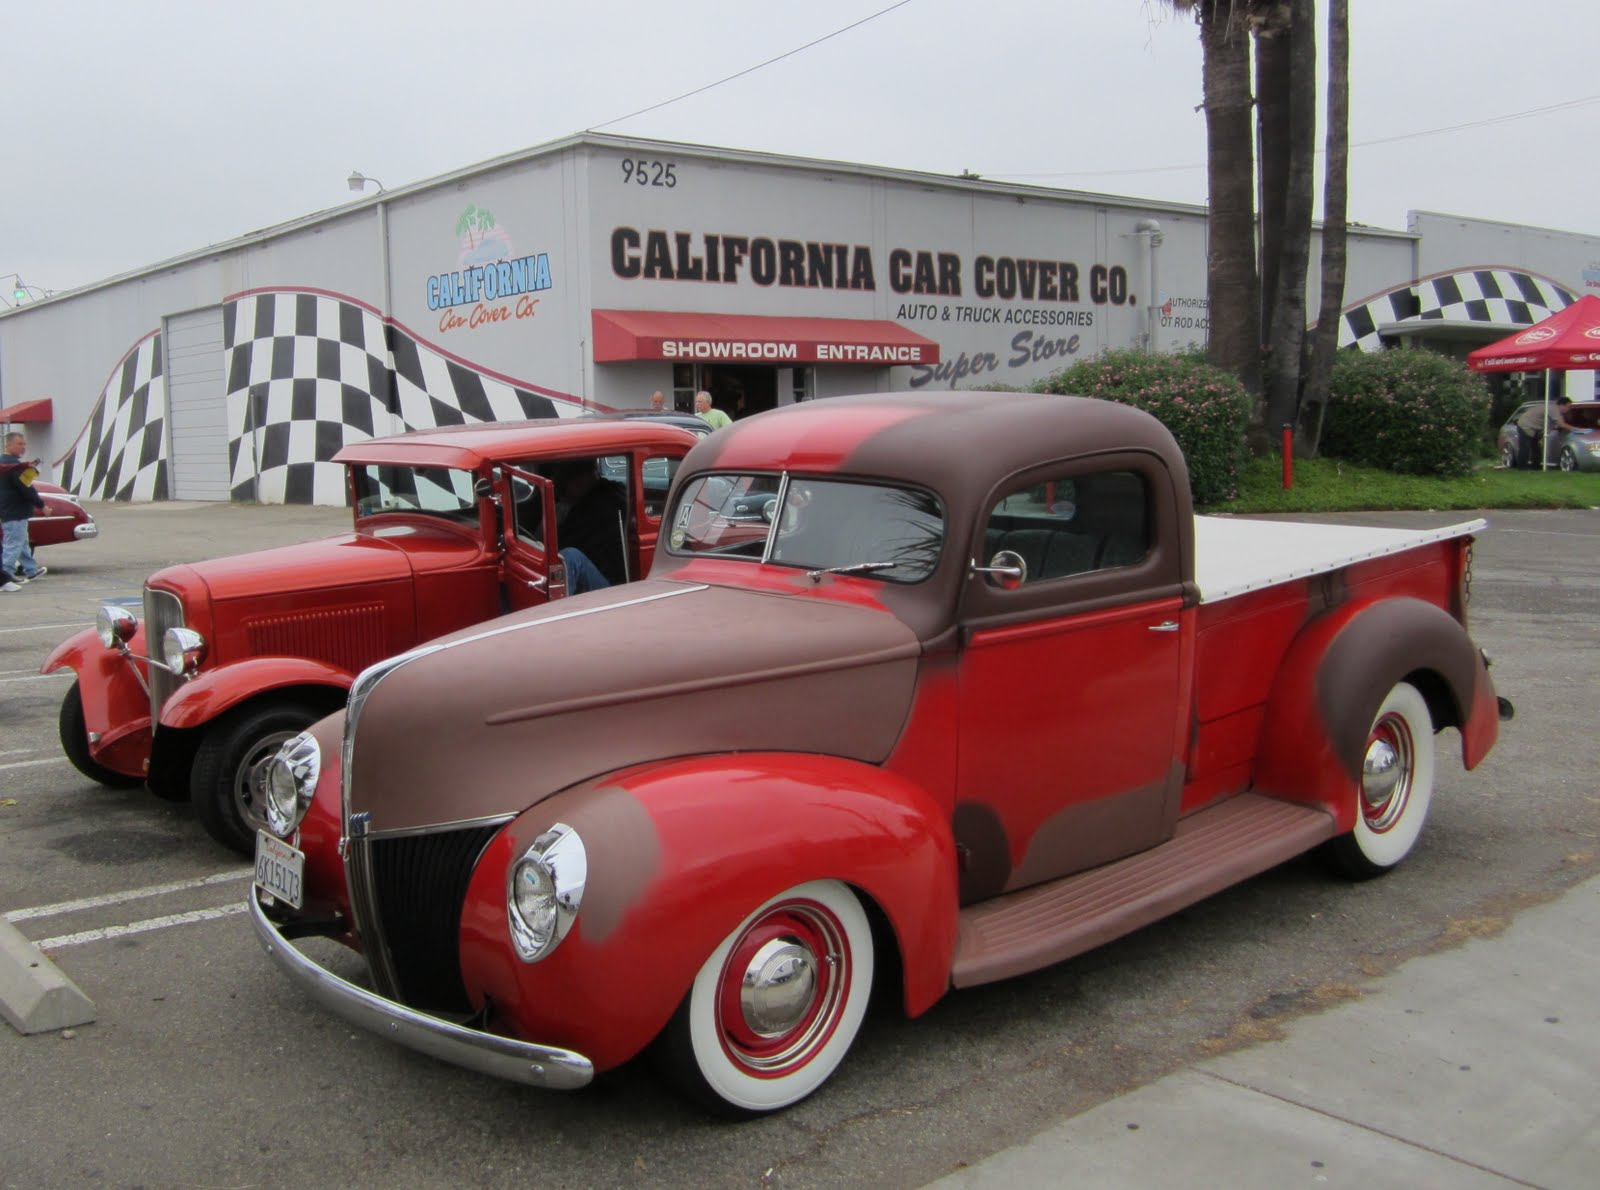 Covering Classic Cars : September 2011